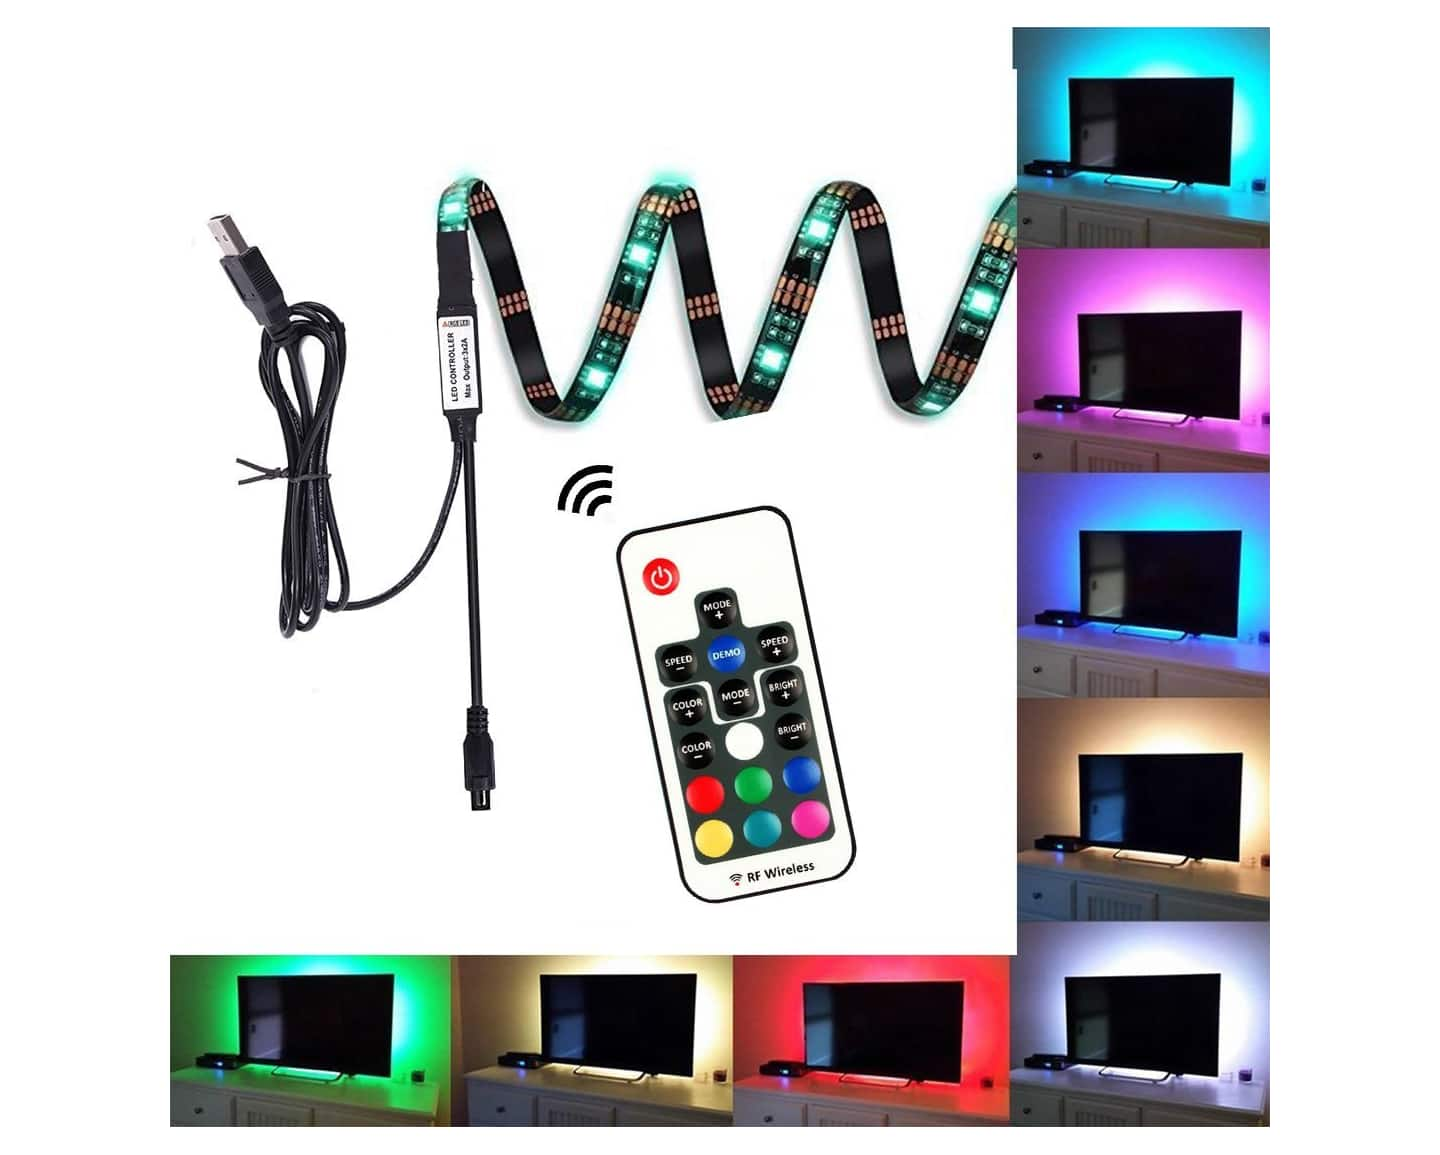 EveShine Bias Lighting Led Strip Lights for HDTV with Remote Control $9.79